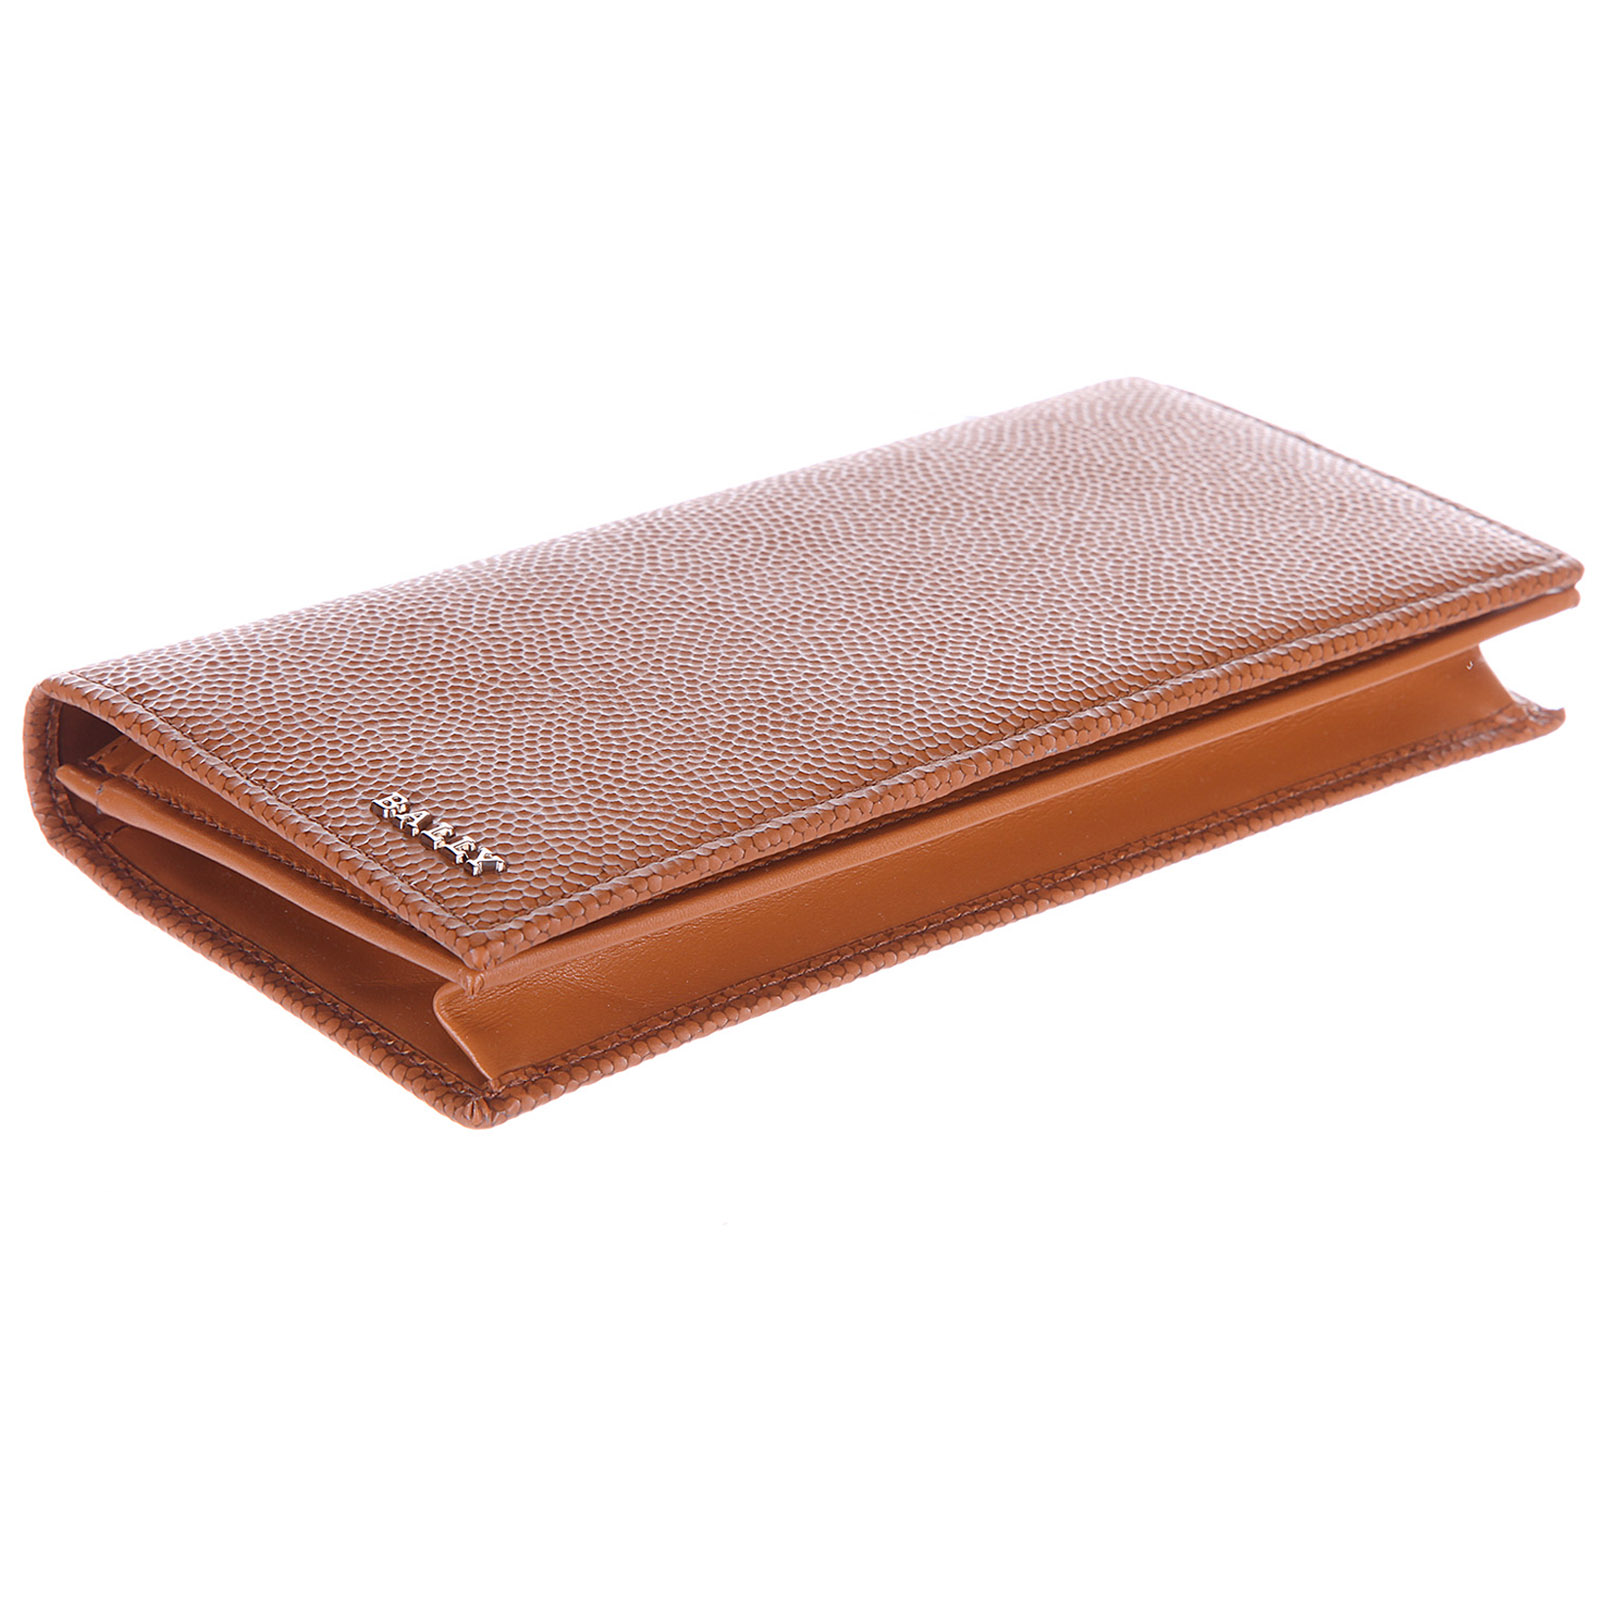 Men's wallet leather coin case holder purse card bifold neall calf embossed